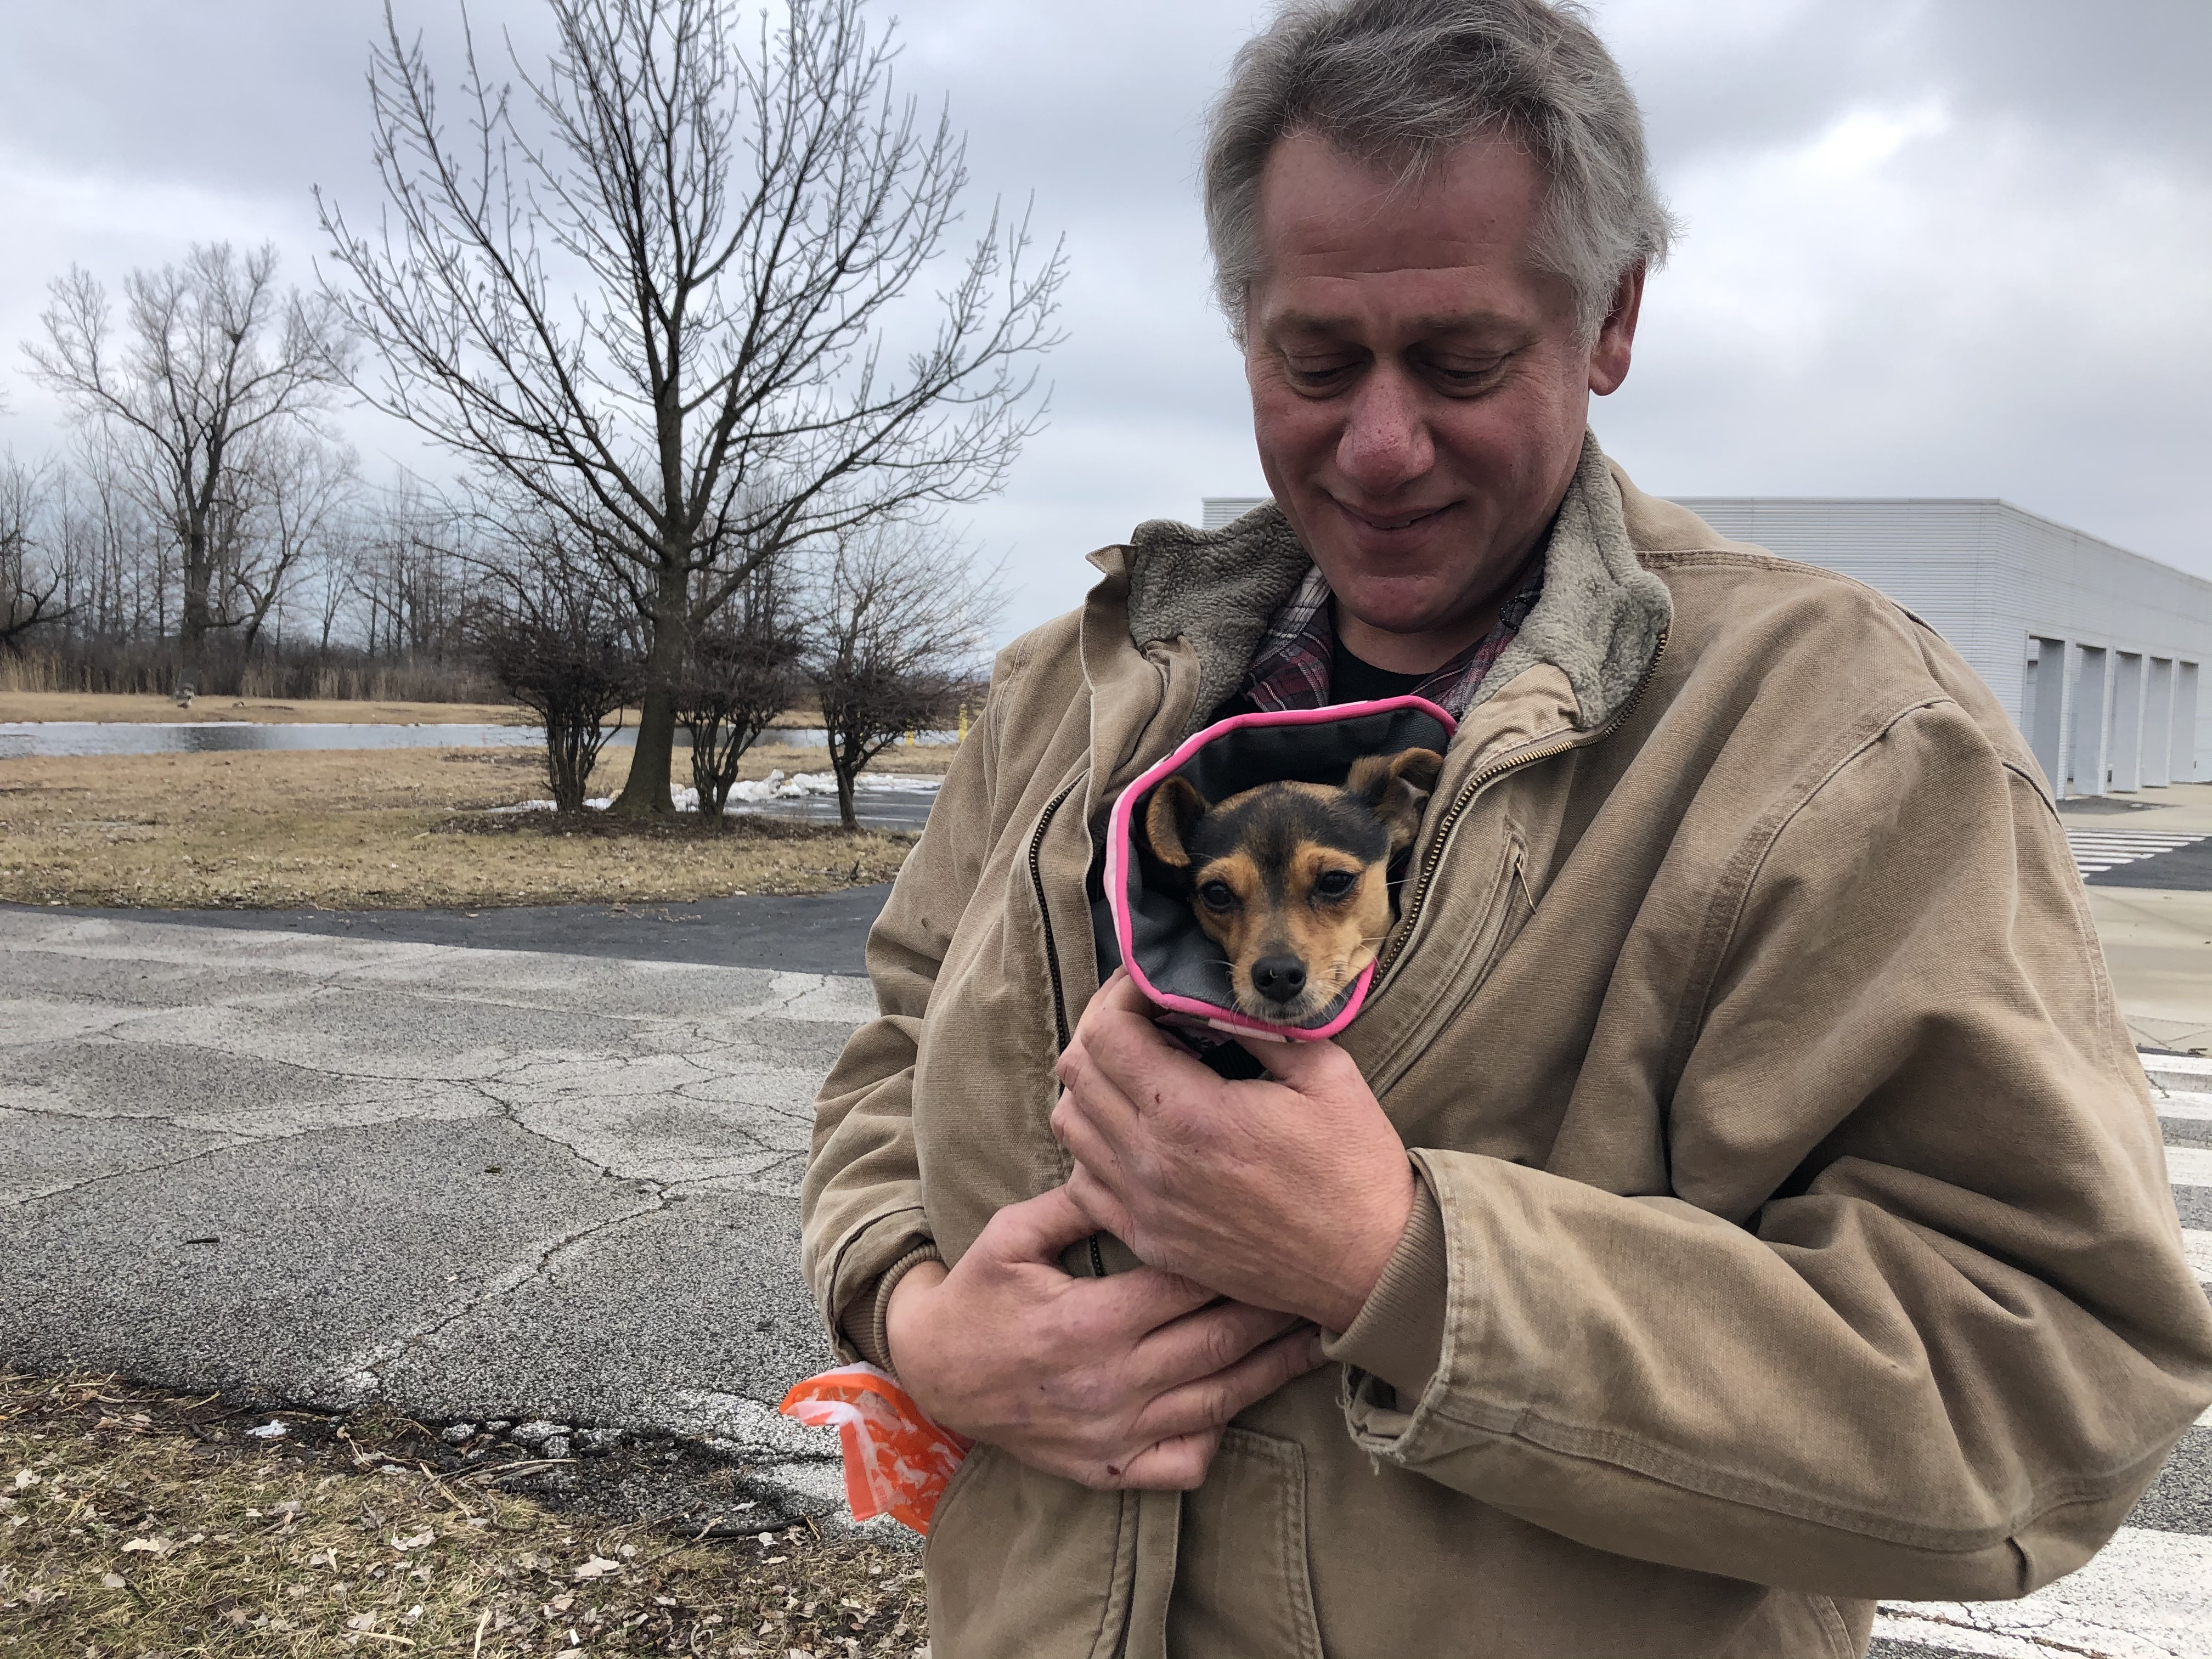 Chicago Police Officer George Davros and newly-adopted Eva stay warm while on a walk near his home.